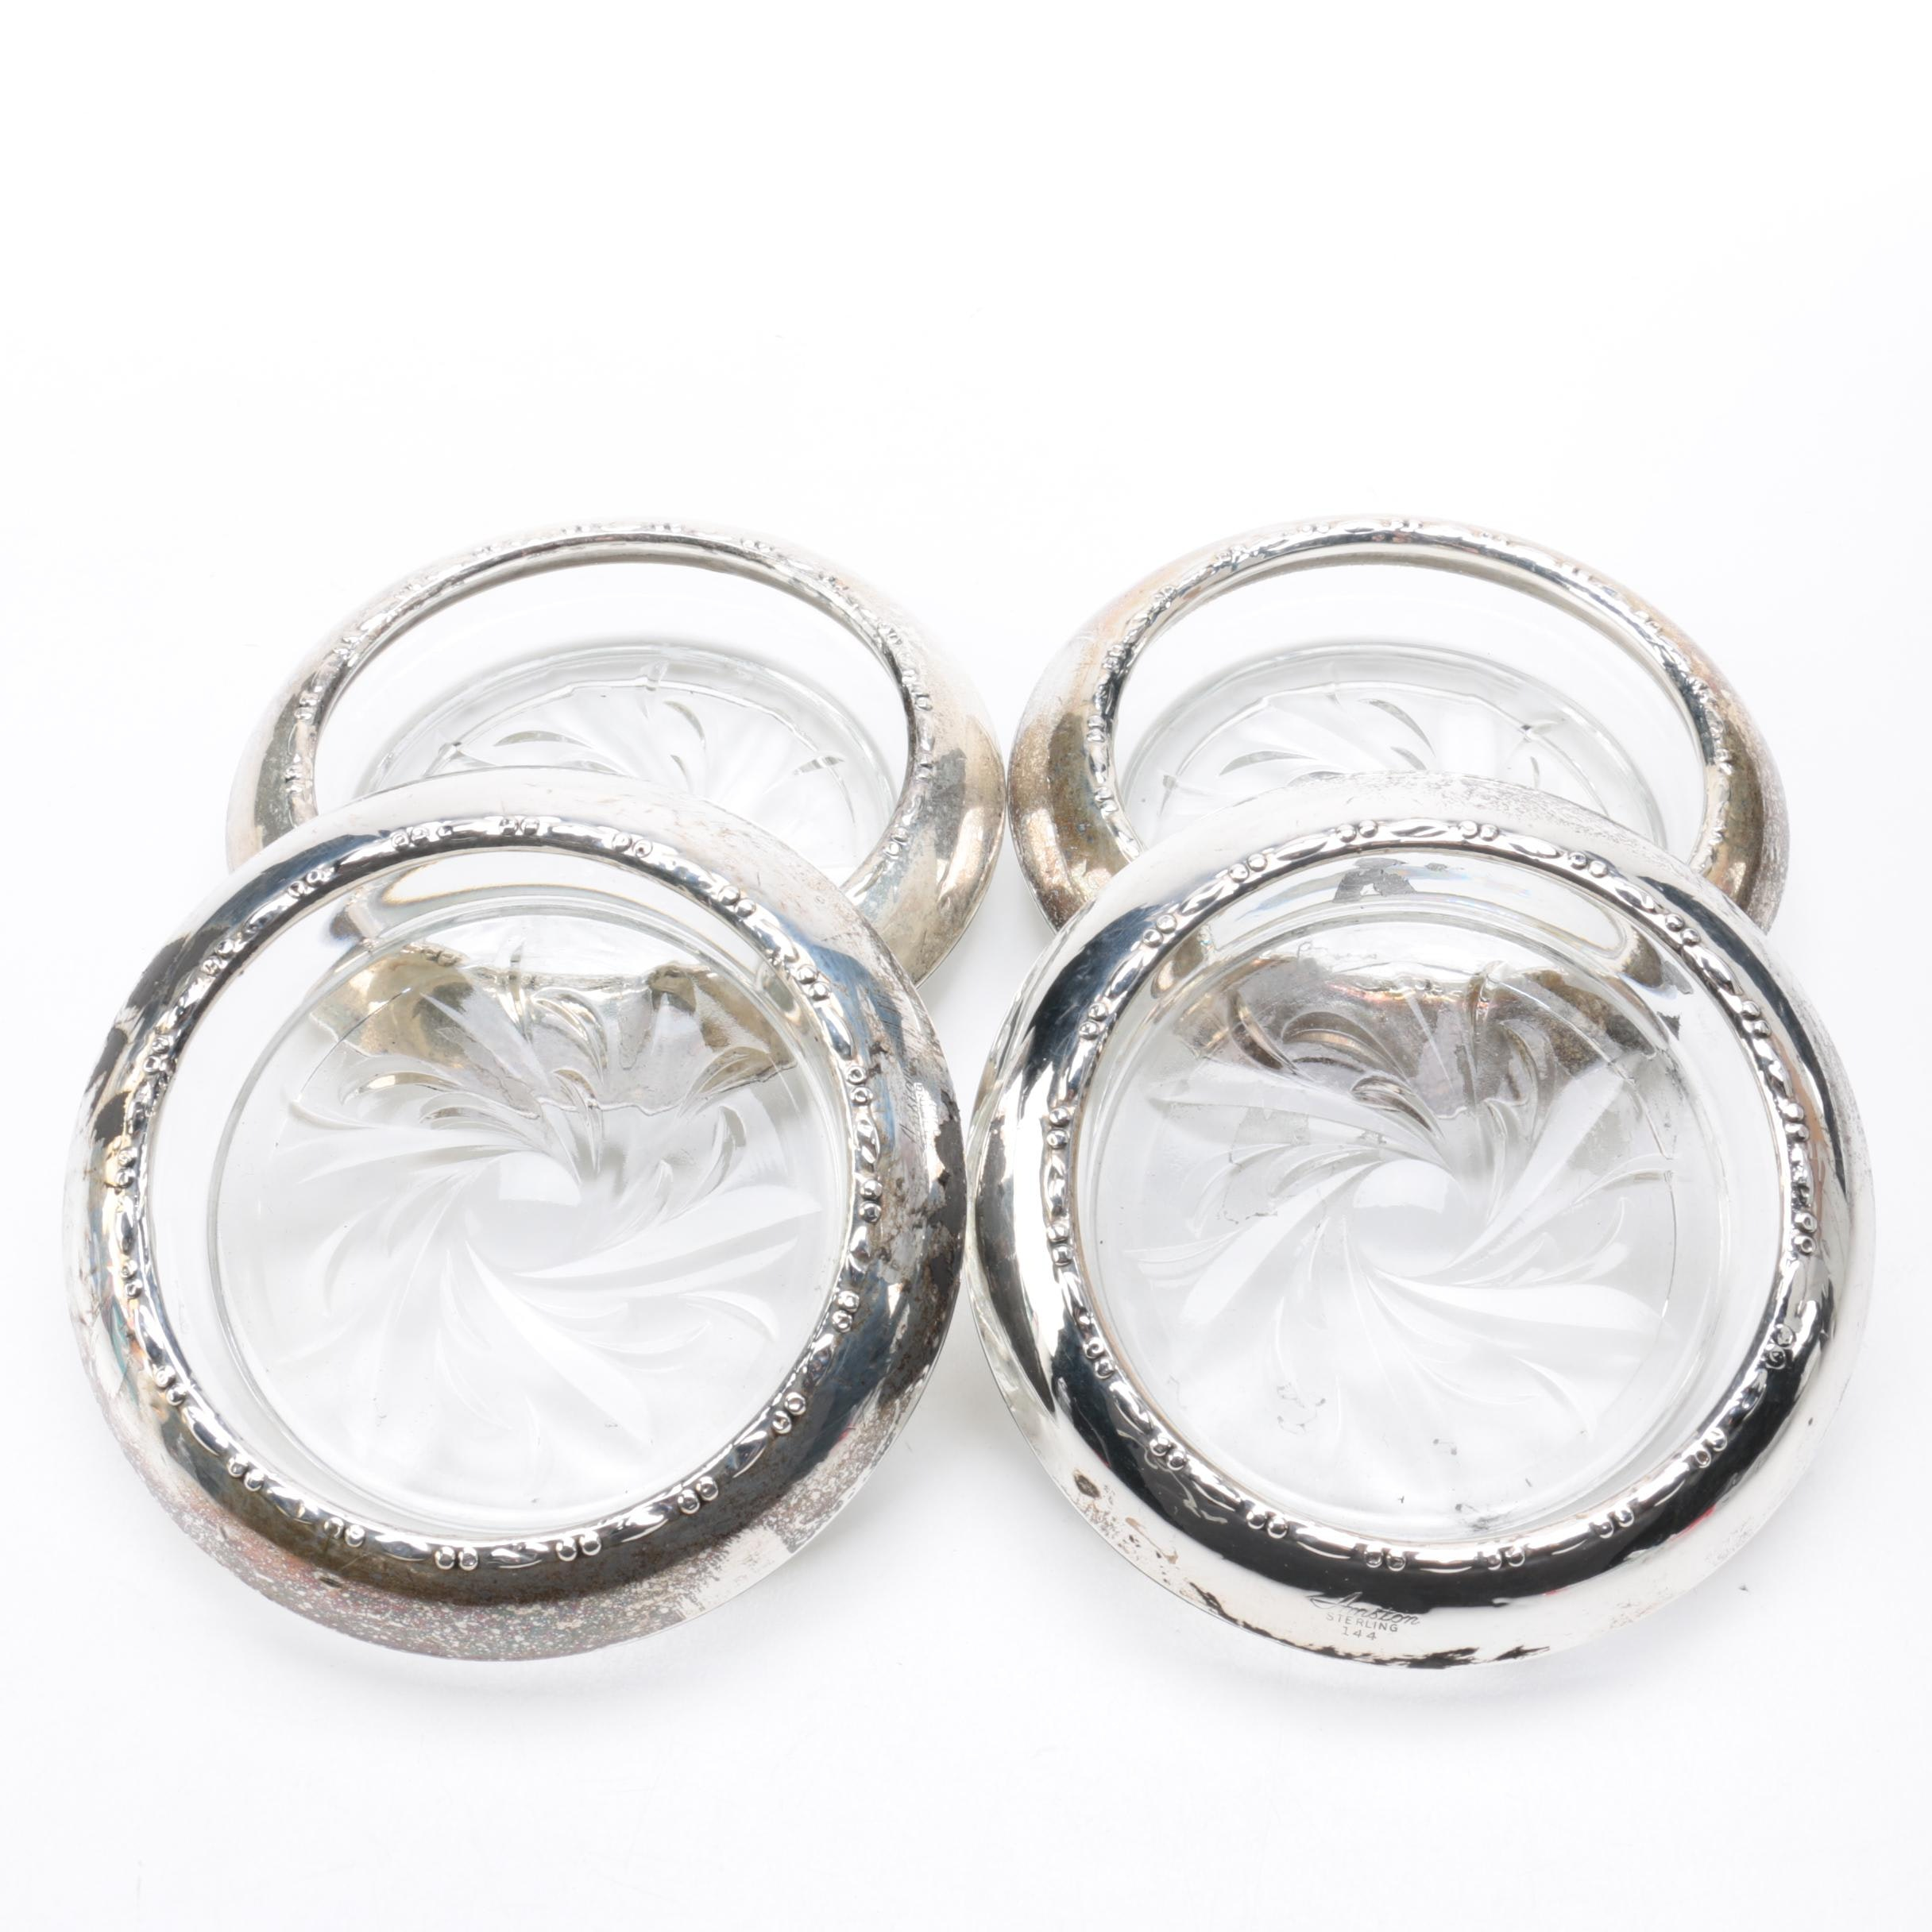 Amston Sterling Co. Sterling Silver Rimmed Glass Coasters